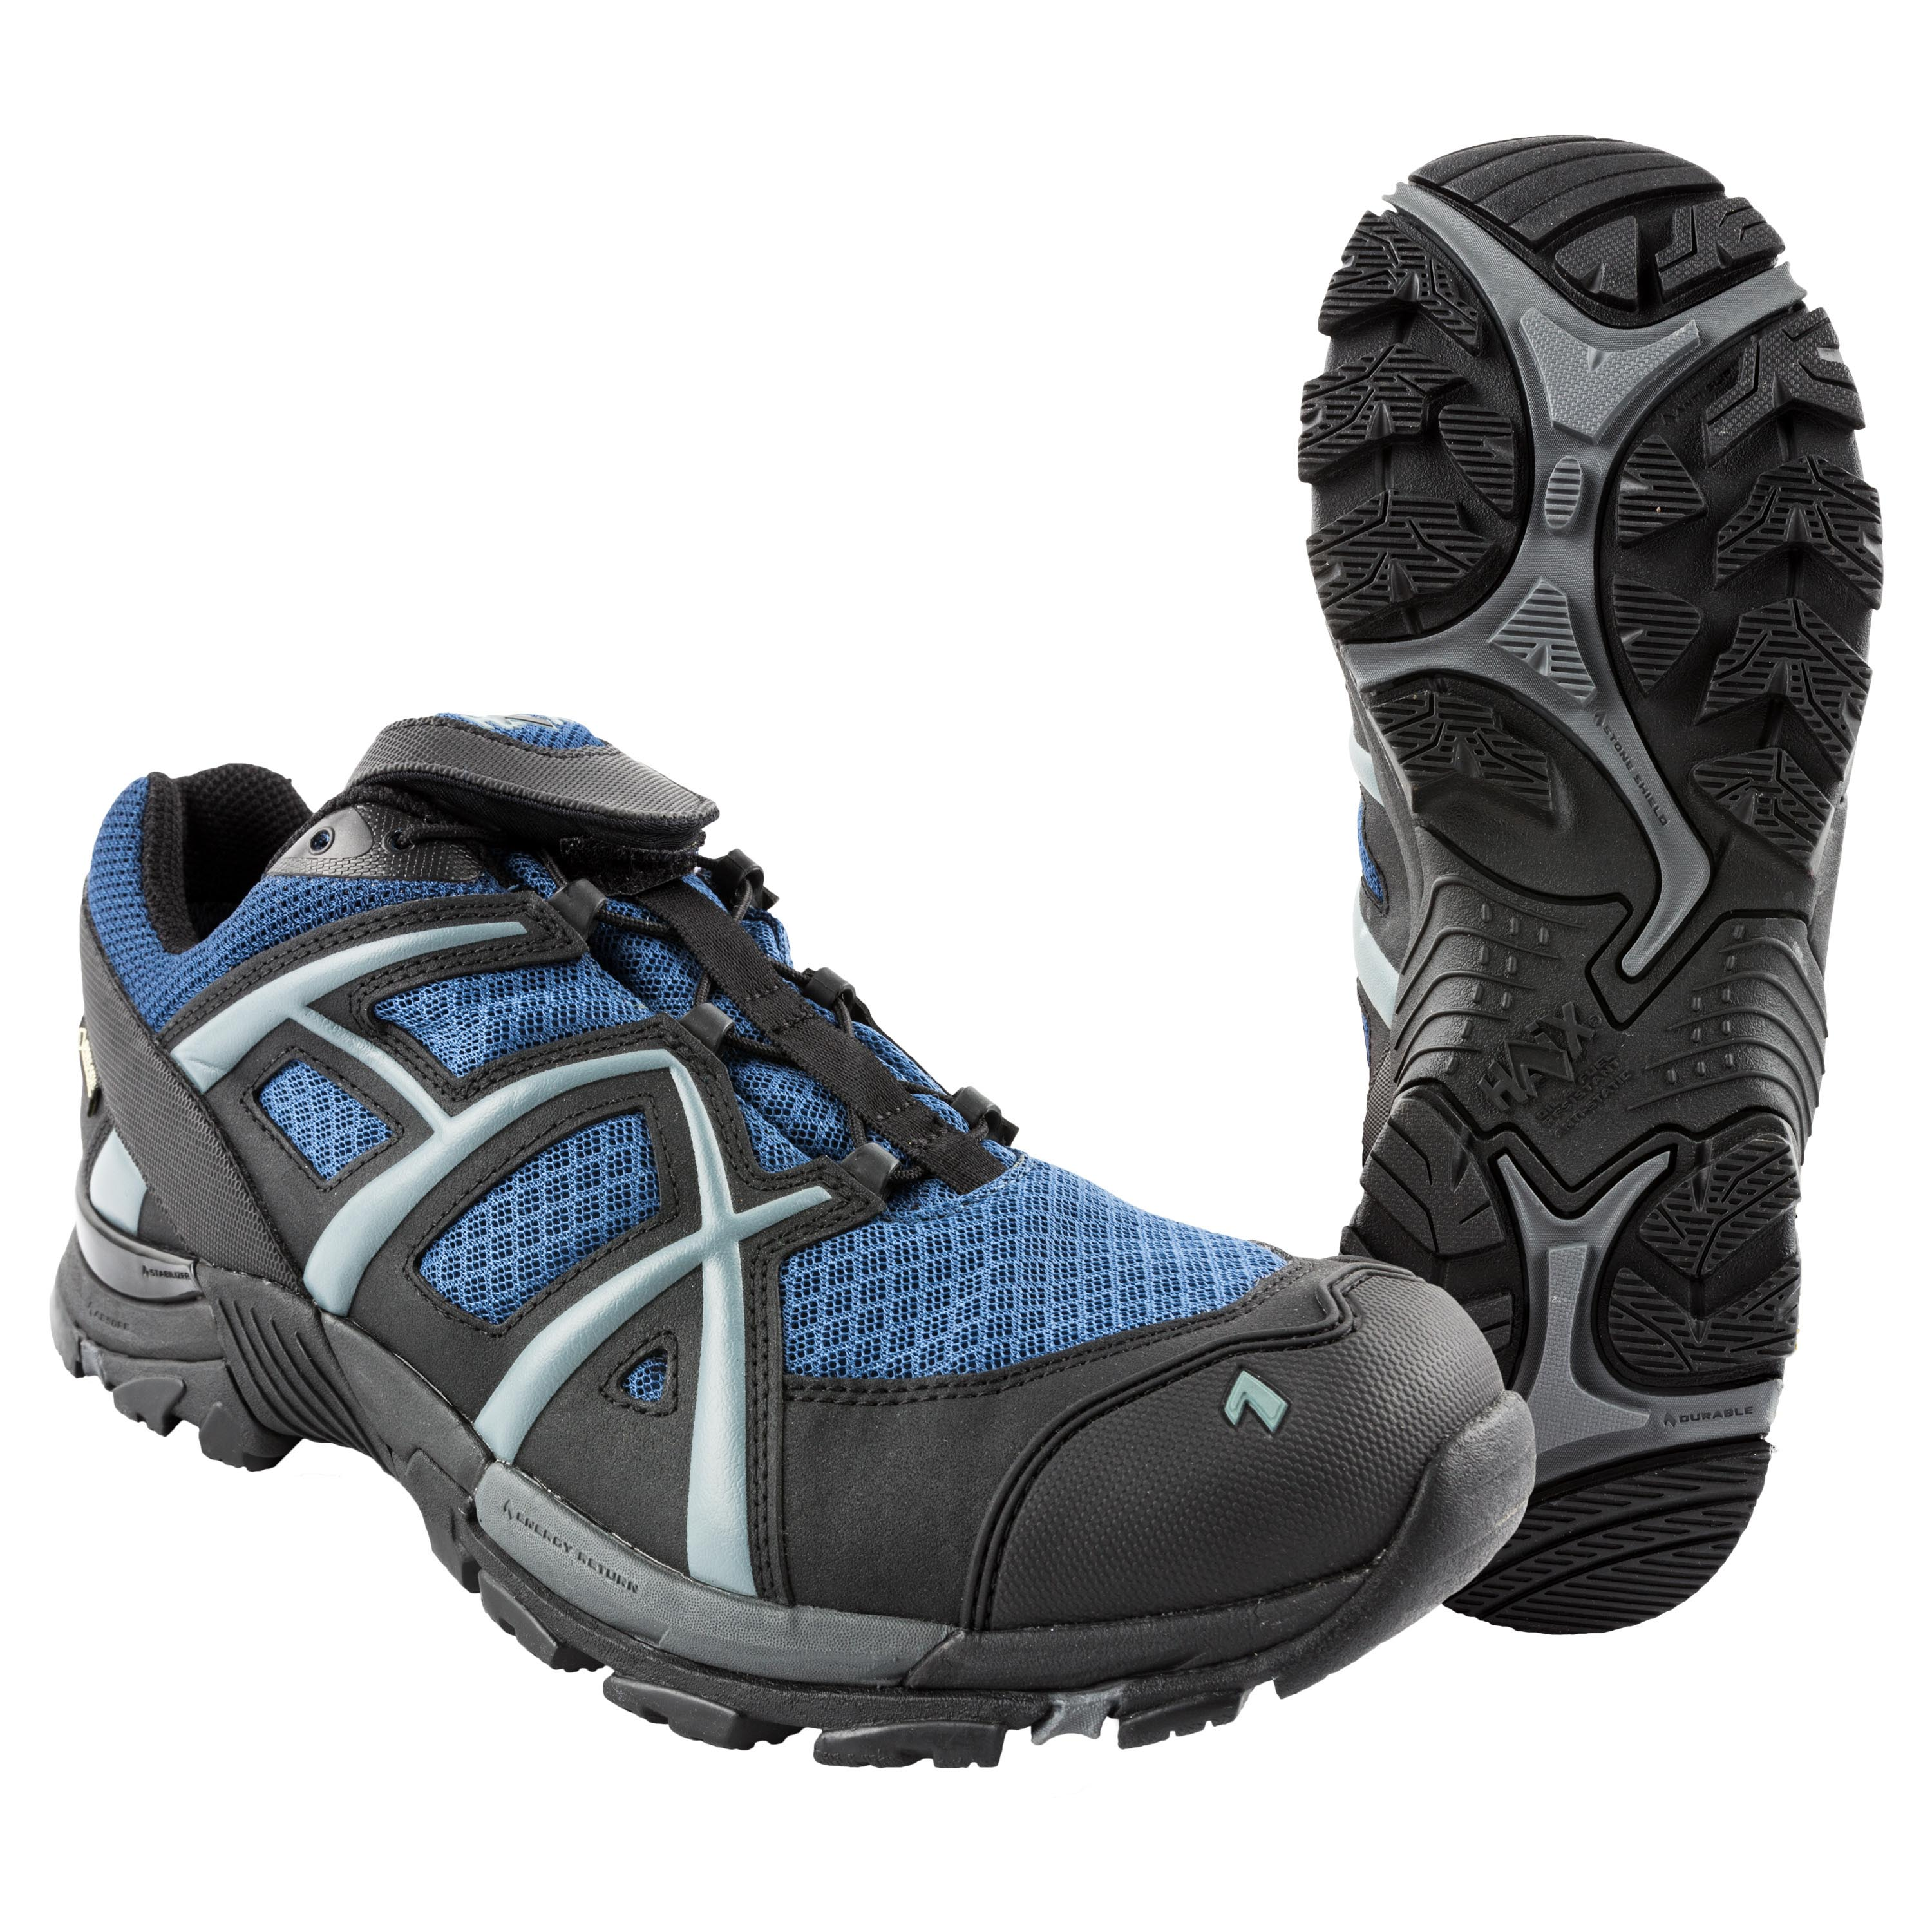 Schuh Haix Black Eagle Adventure 30 Low sky